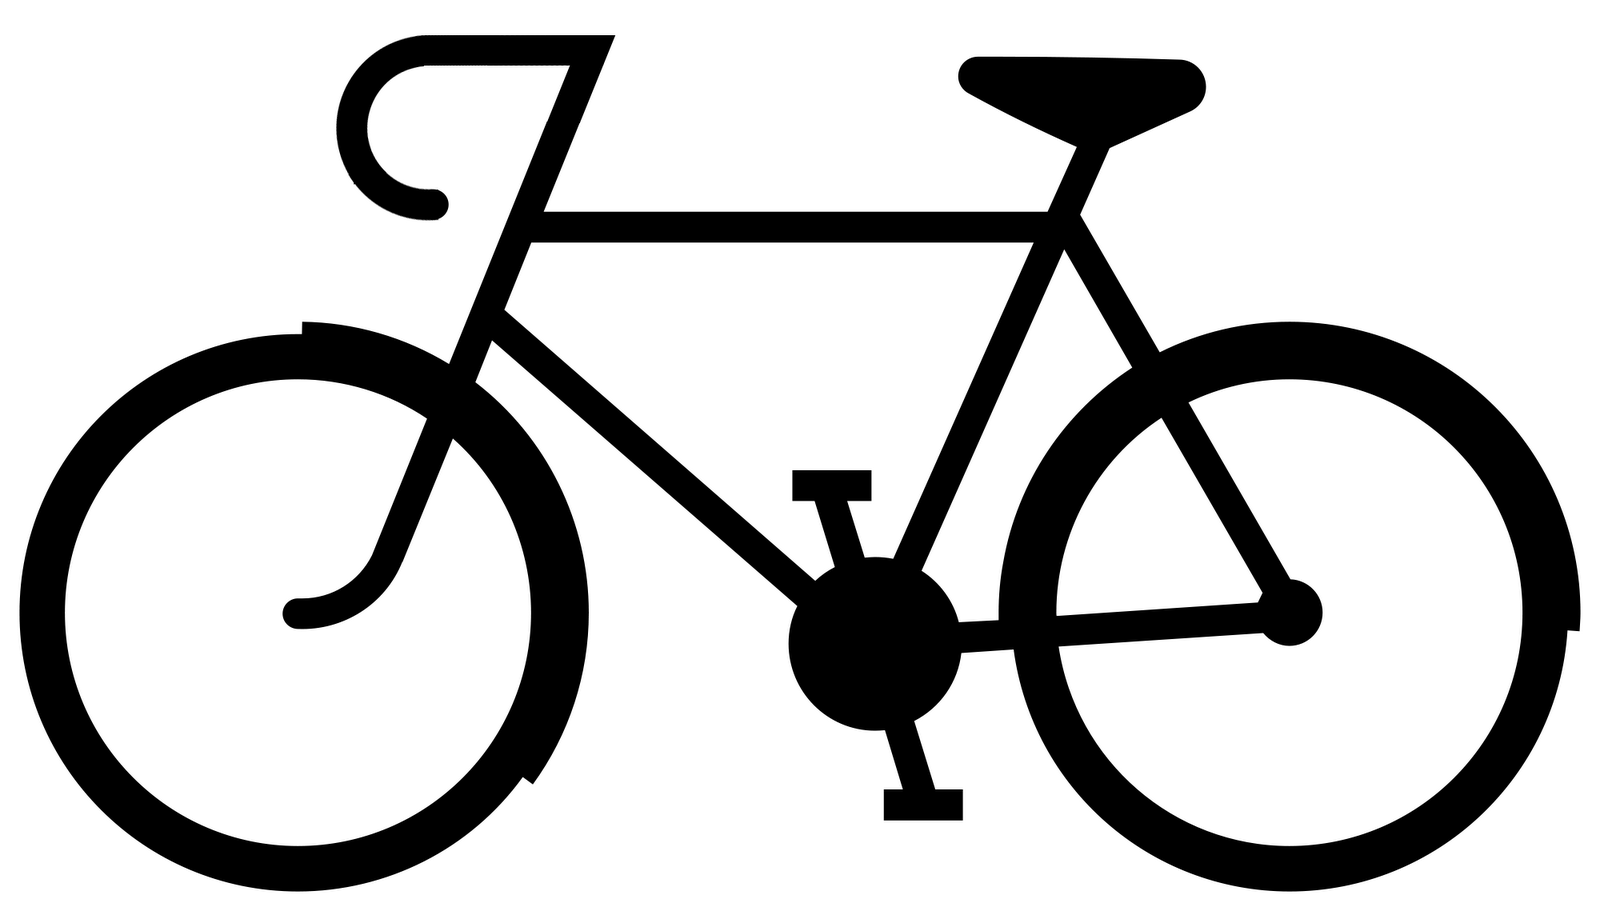 Bicycle Silhouette image perfect